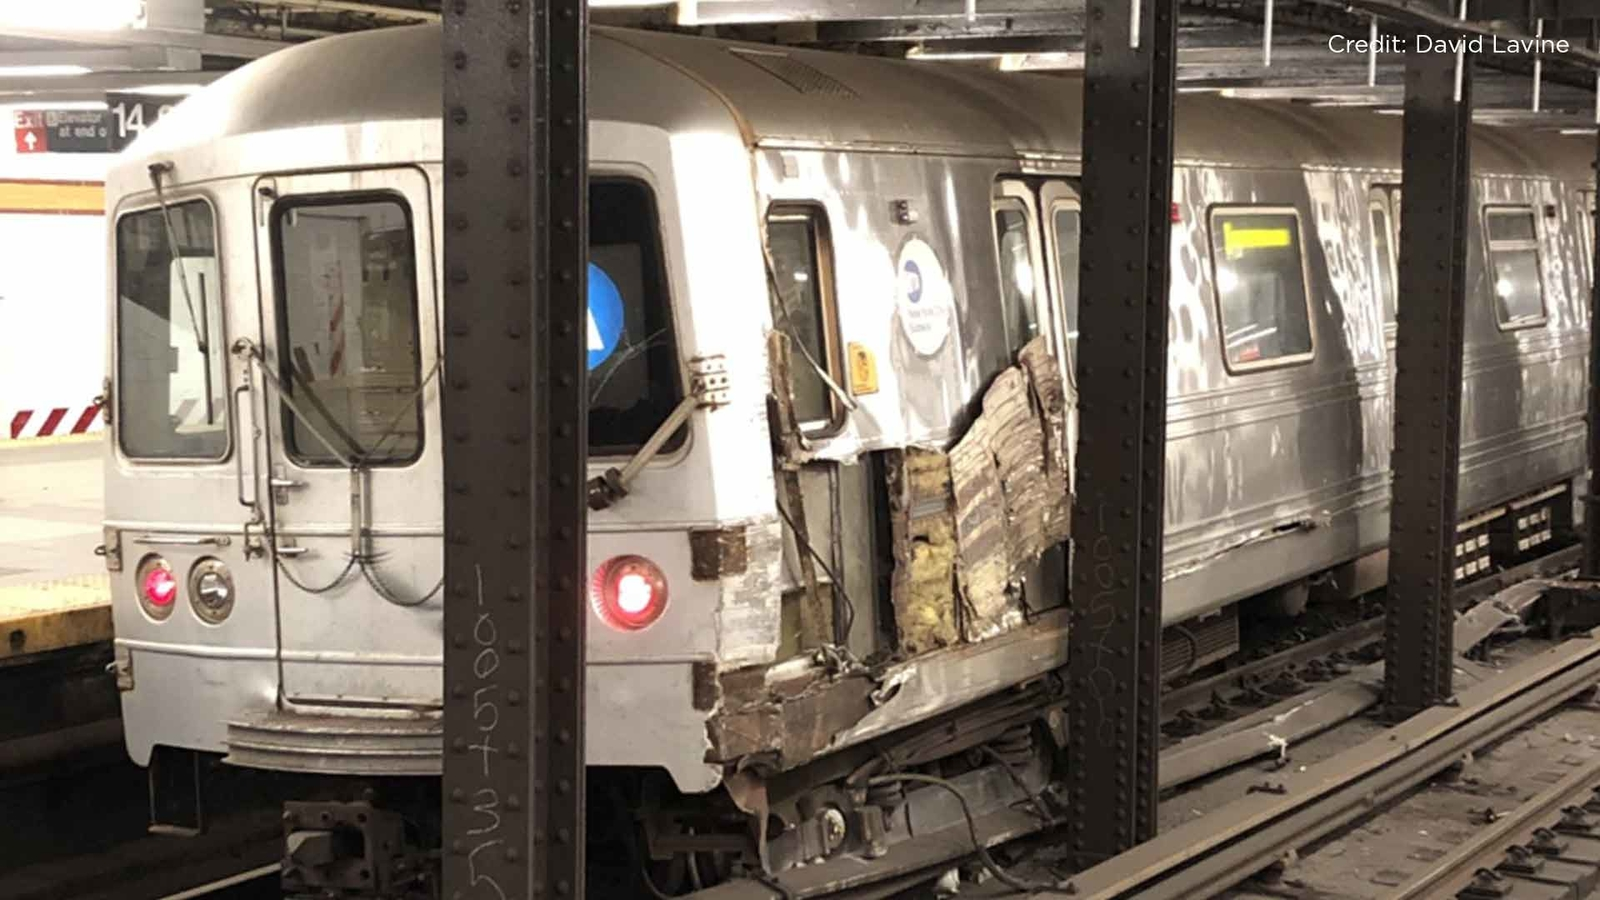 NYC subway crash: A train derails after hitting debris at a station in Chelsea, north of Manhattan